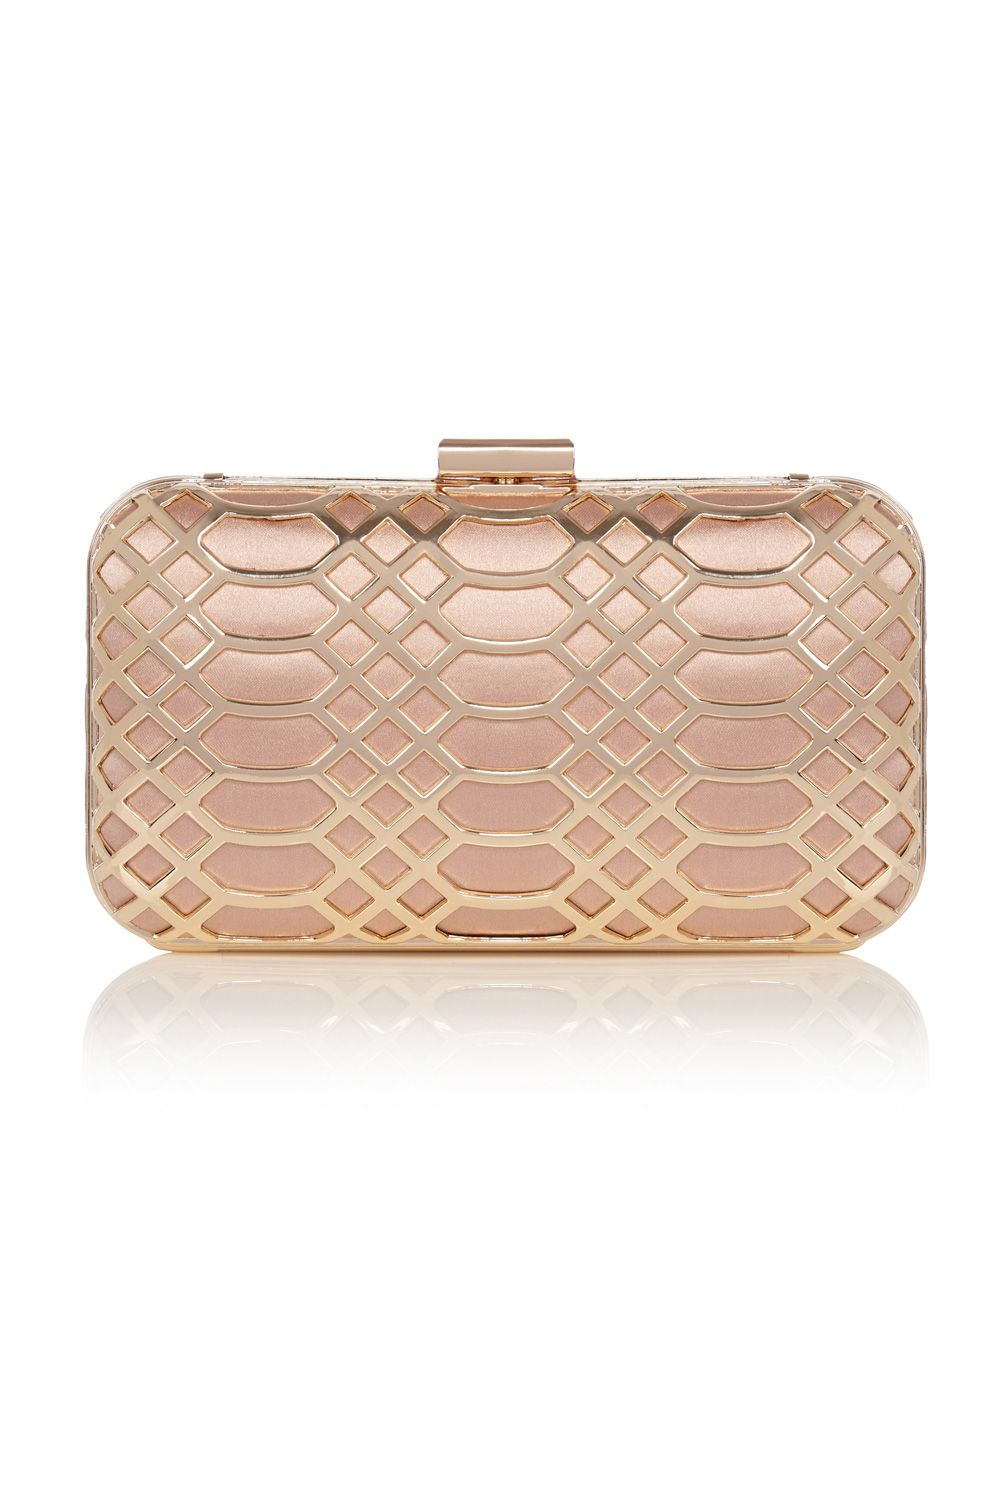 bc7bfcf0afdc All Accessories | Metallics ROSE GOLD CLUTCH | Coast Stores Limited ...